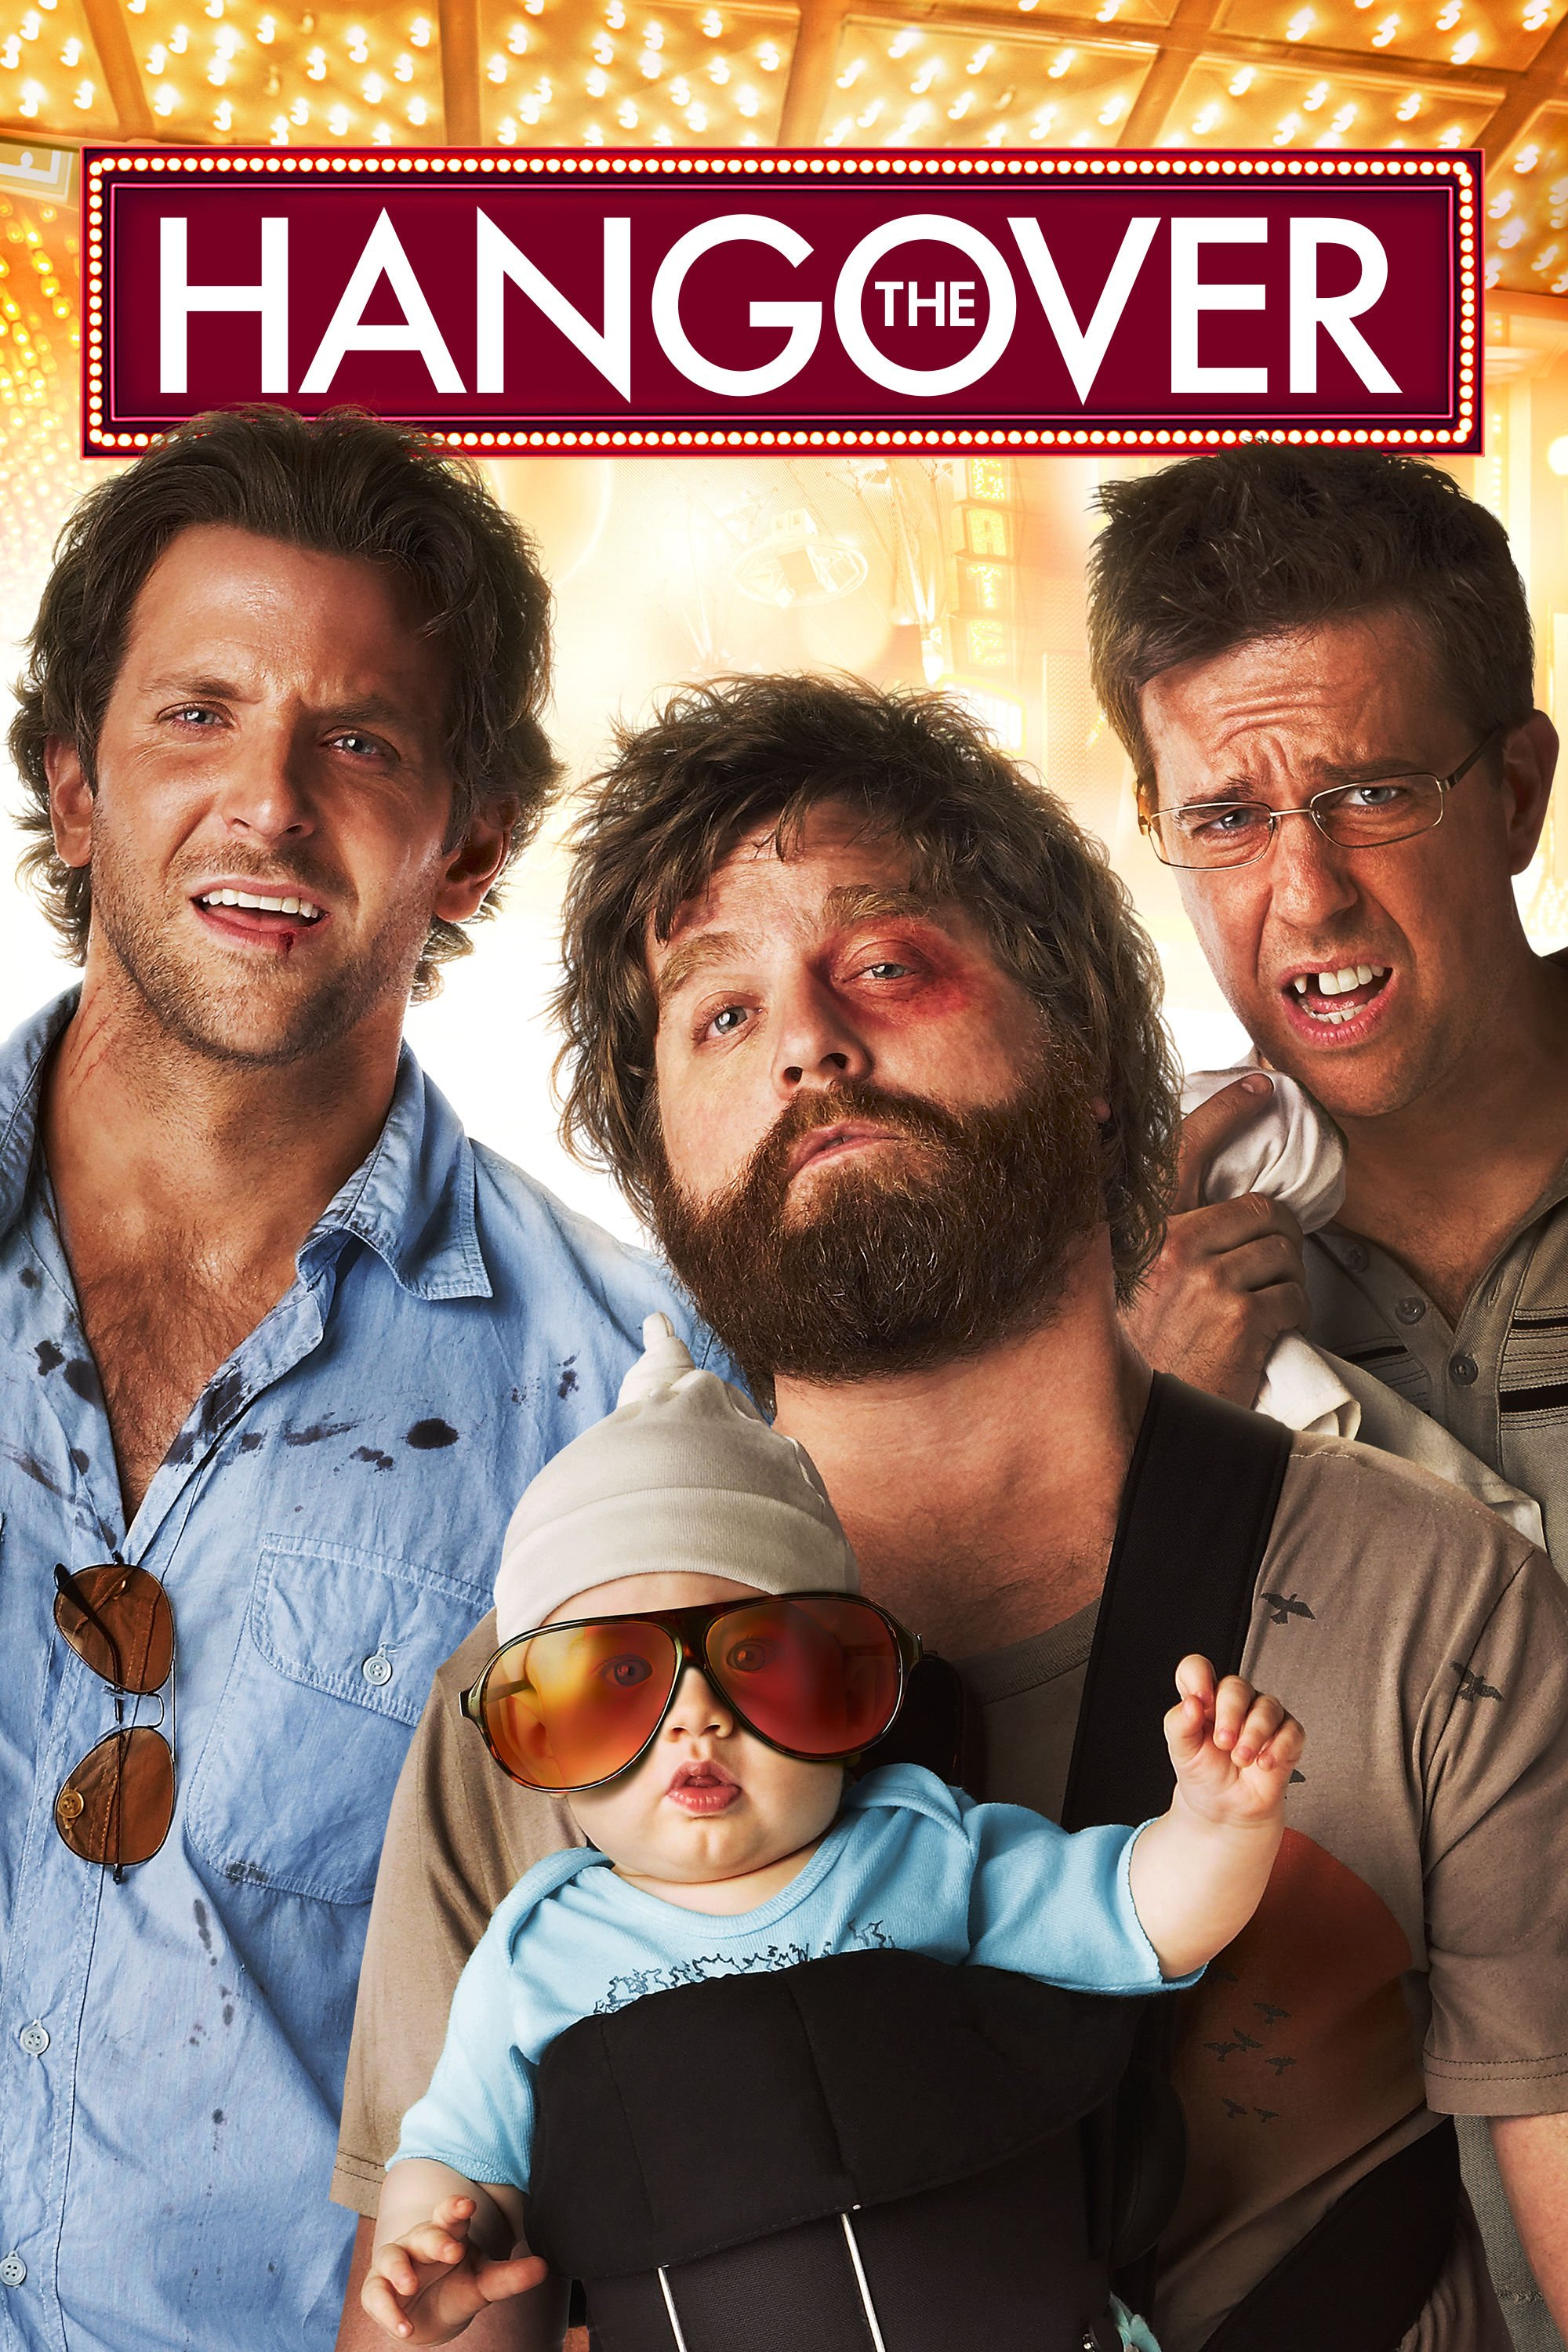 the-hangover-filming-locations-dvd-poster